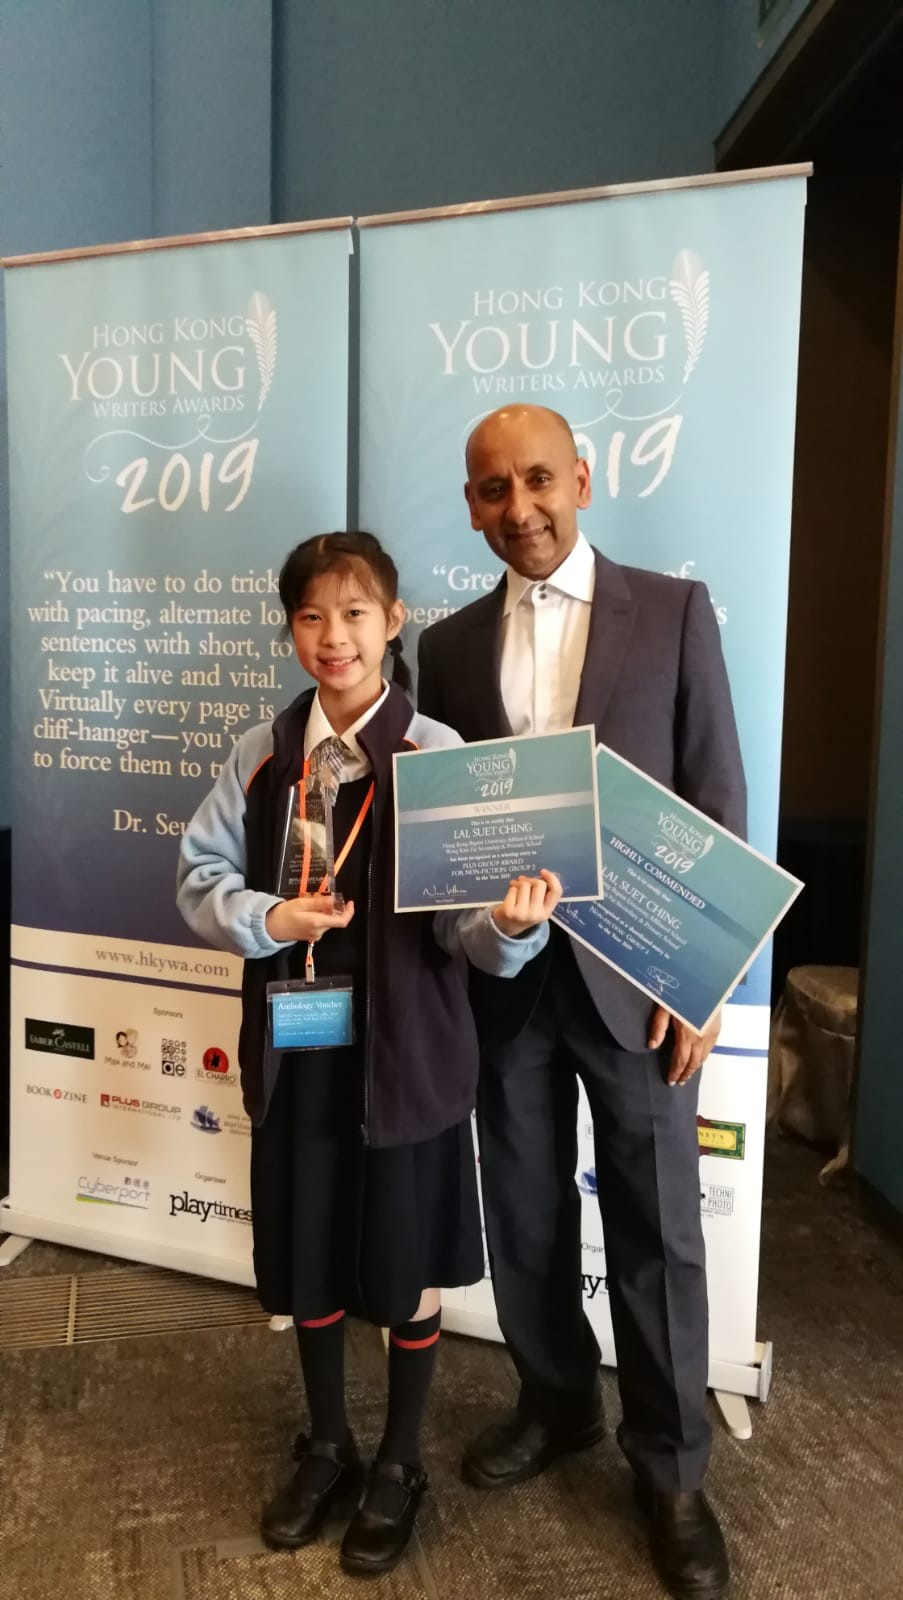 Hong Kong Young Writers Award